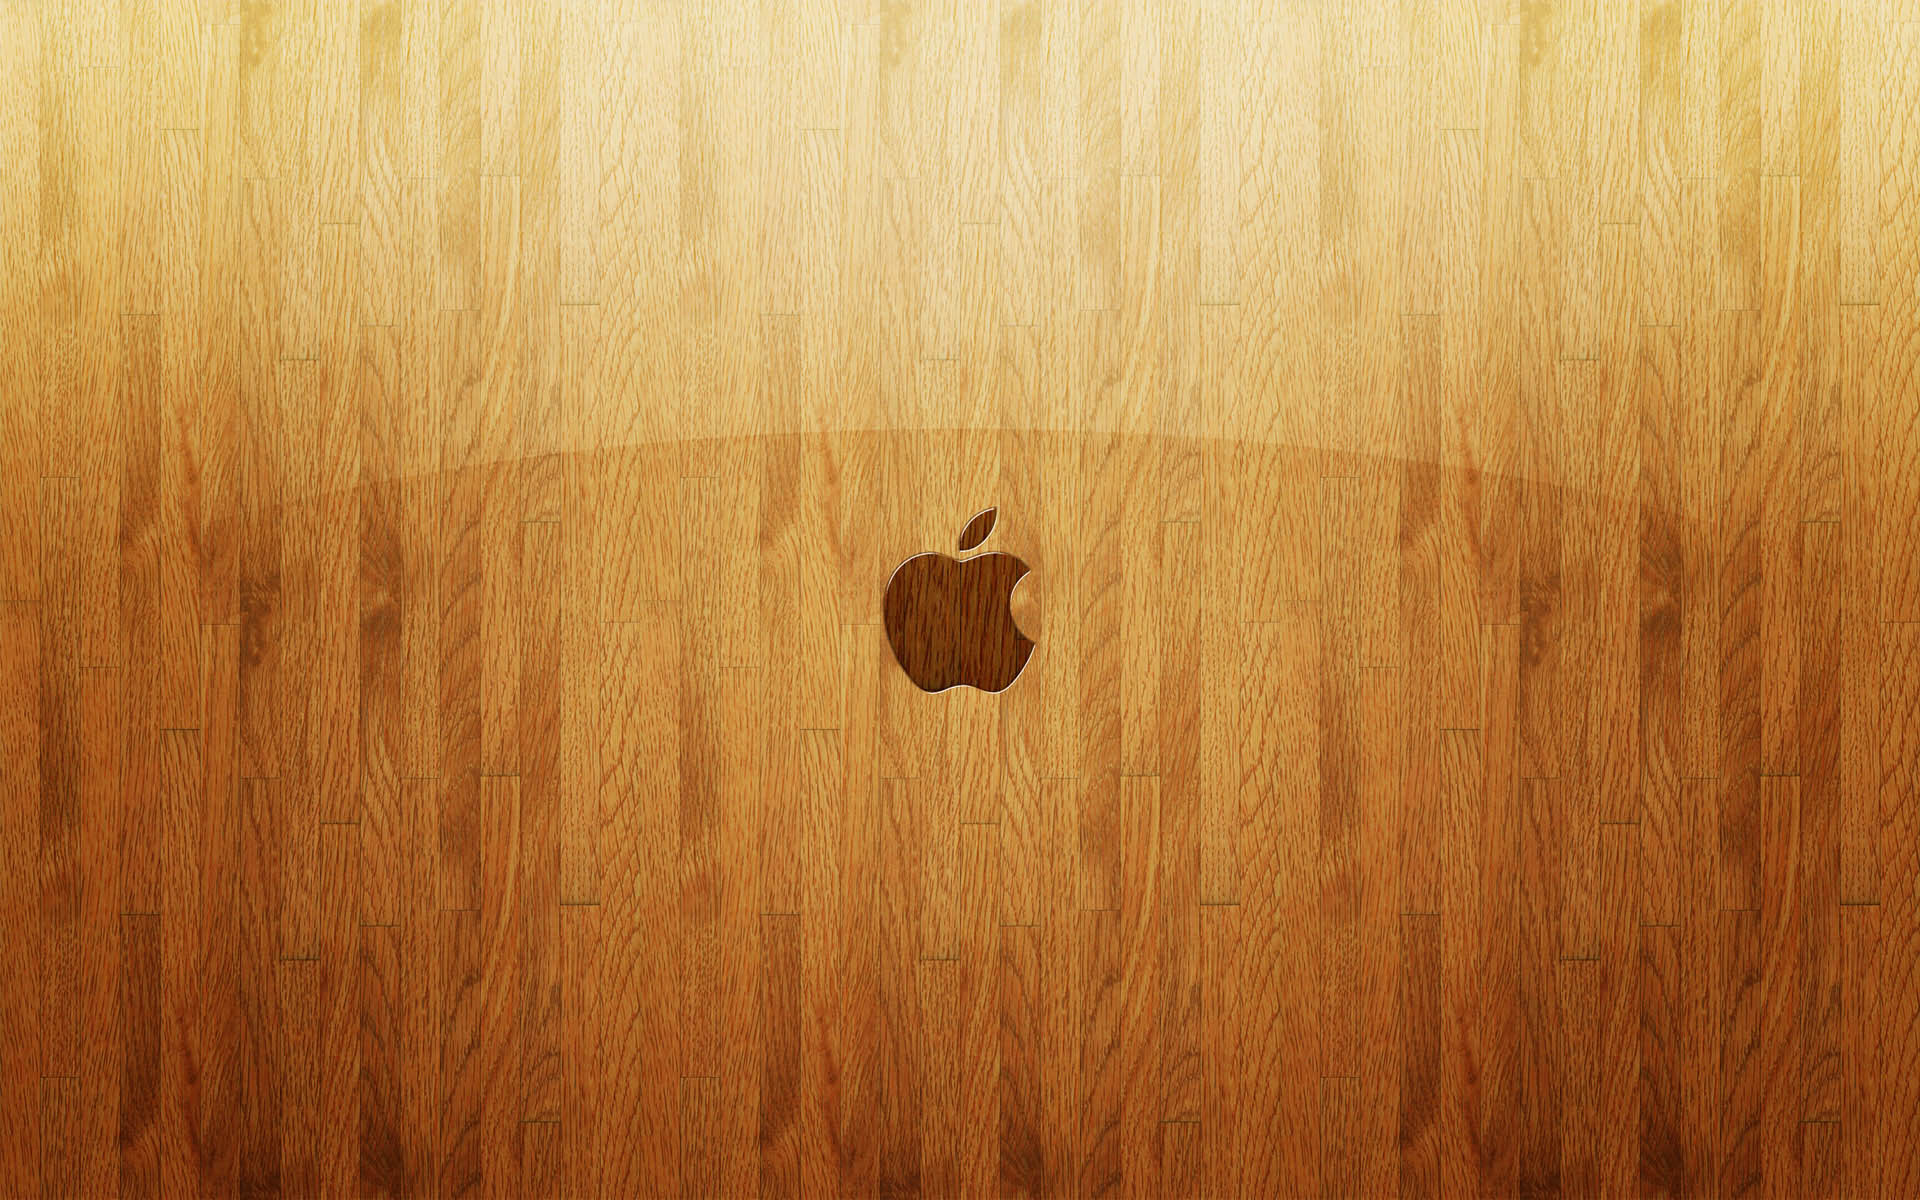 Images About Texture Wood Wallpaper Hd On Pinterest 1920x1200